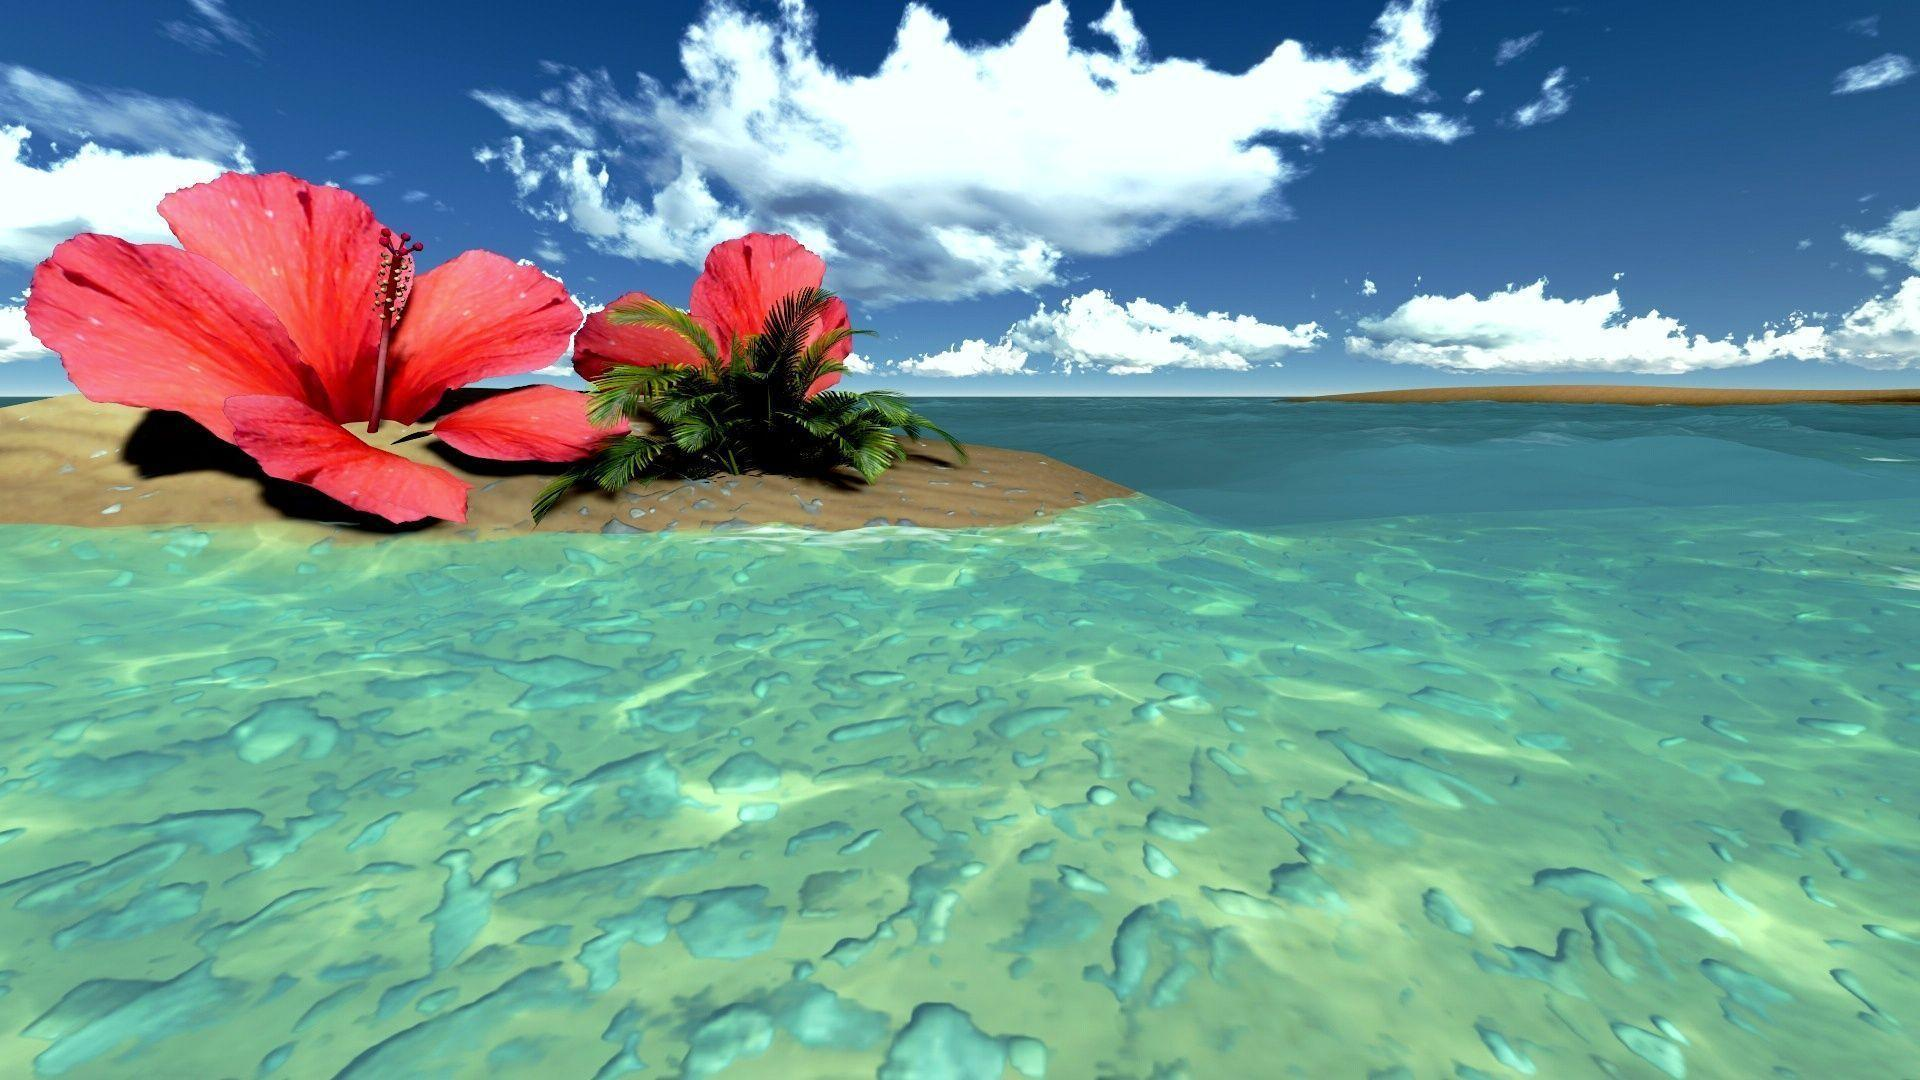 tropical hd wallpaper widescreen 1920x1080 - photo #23